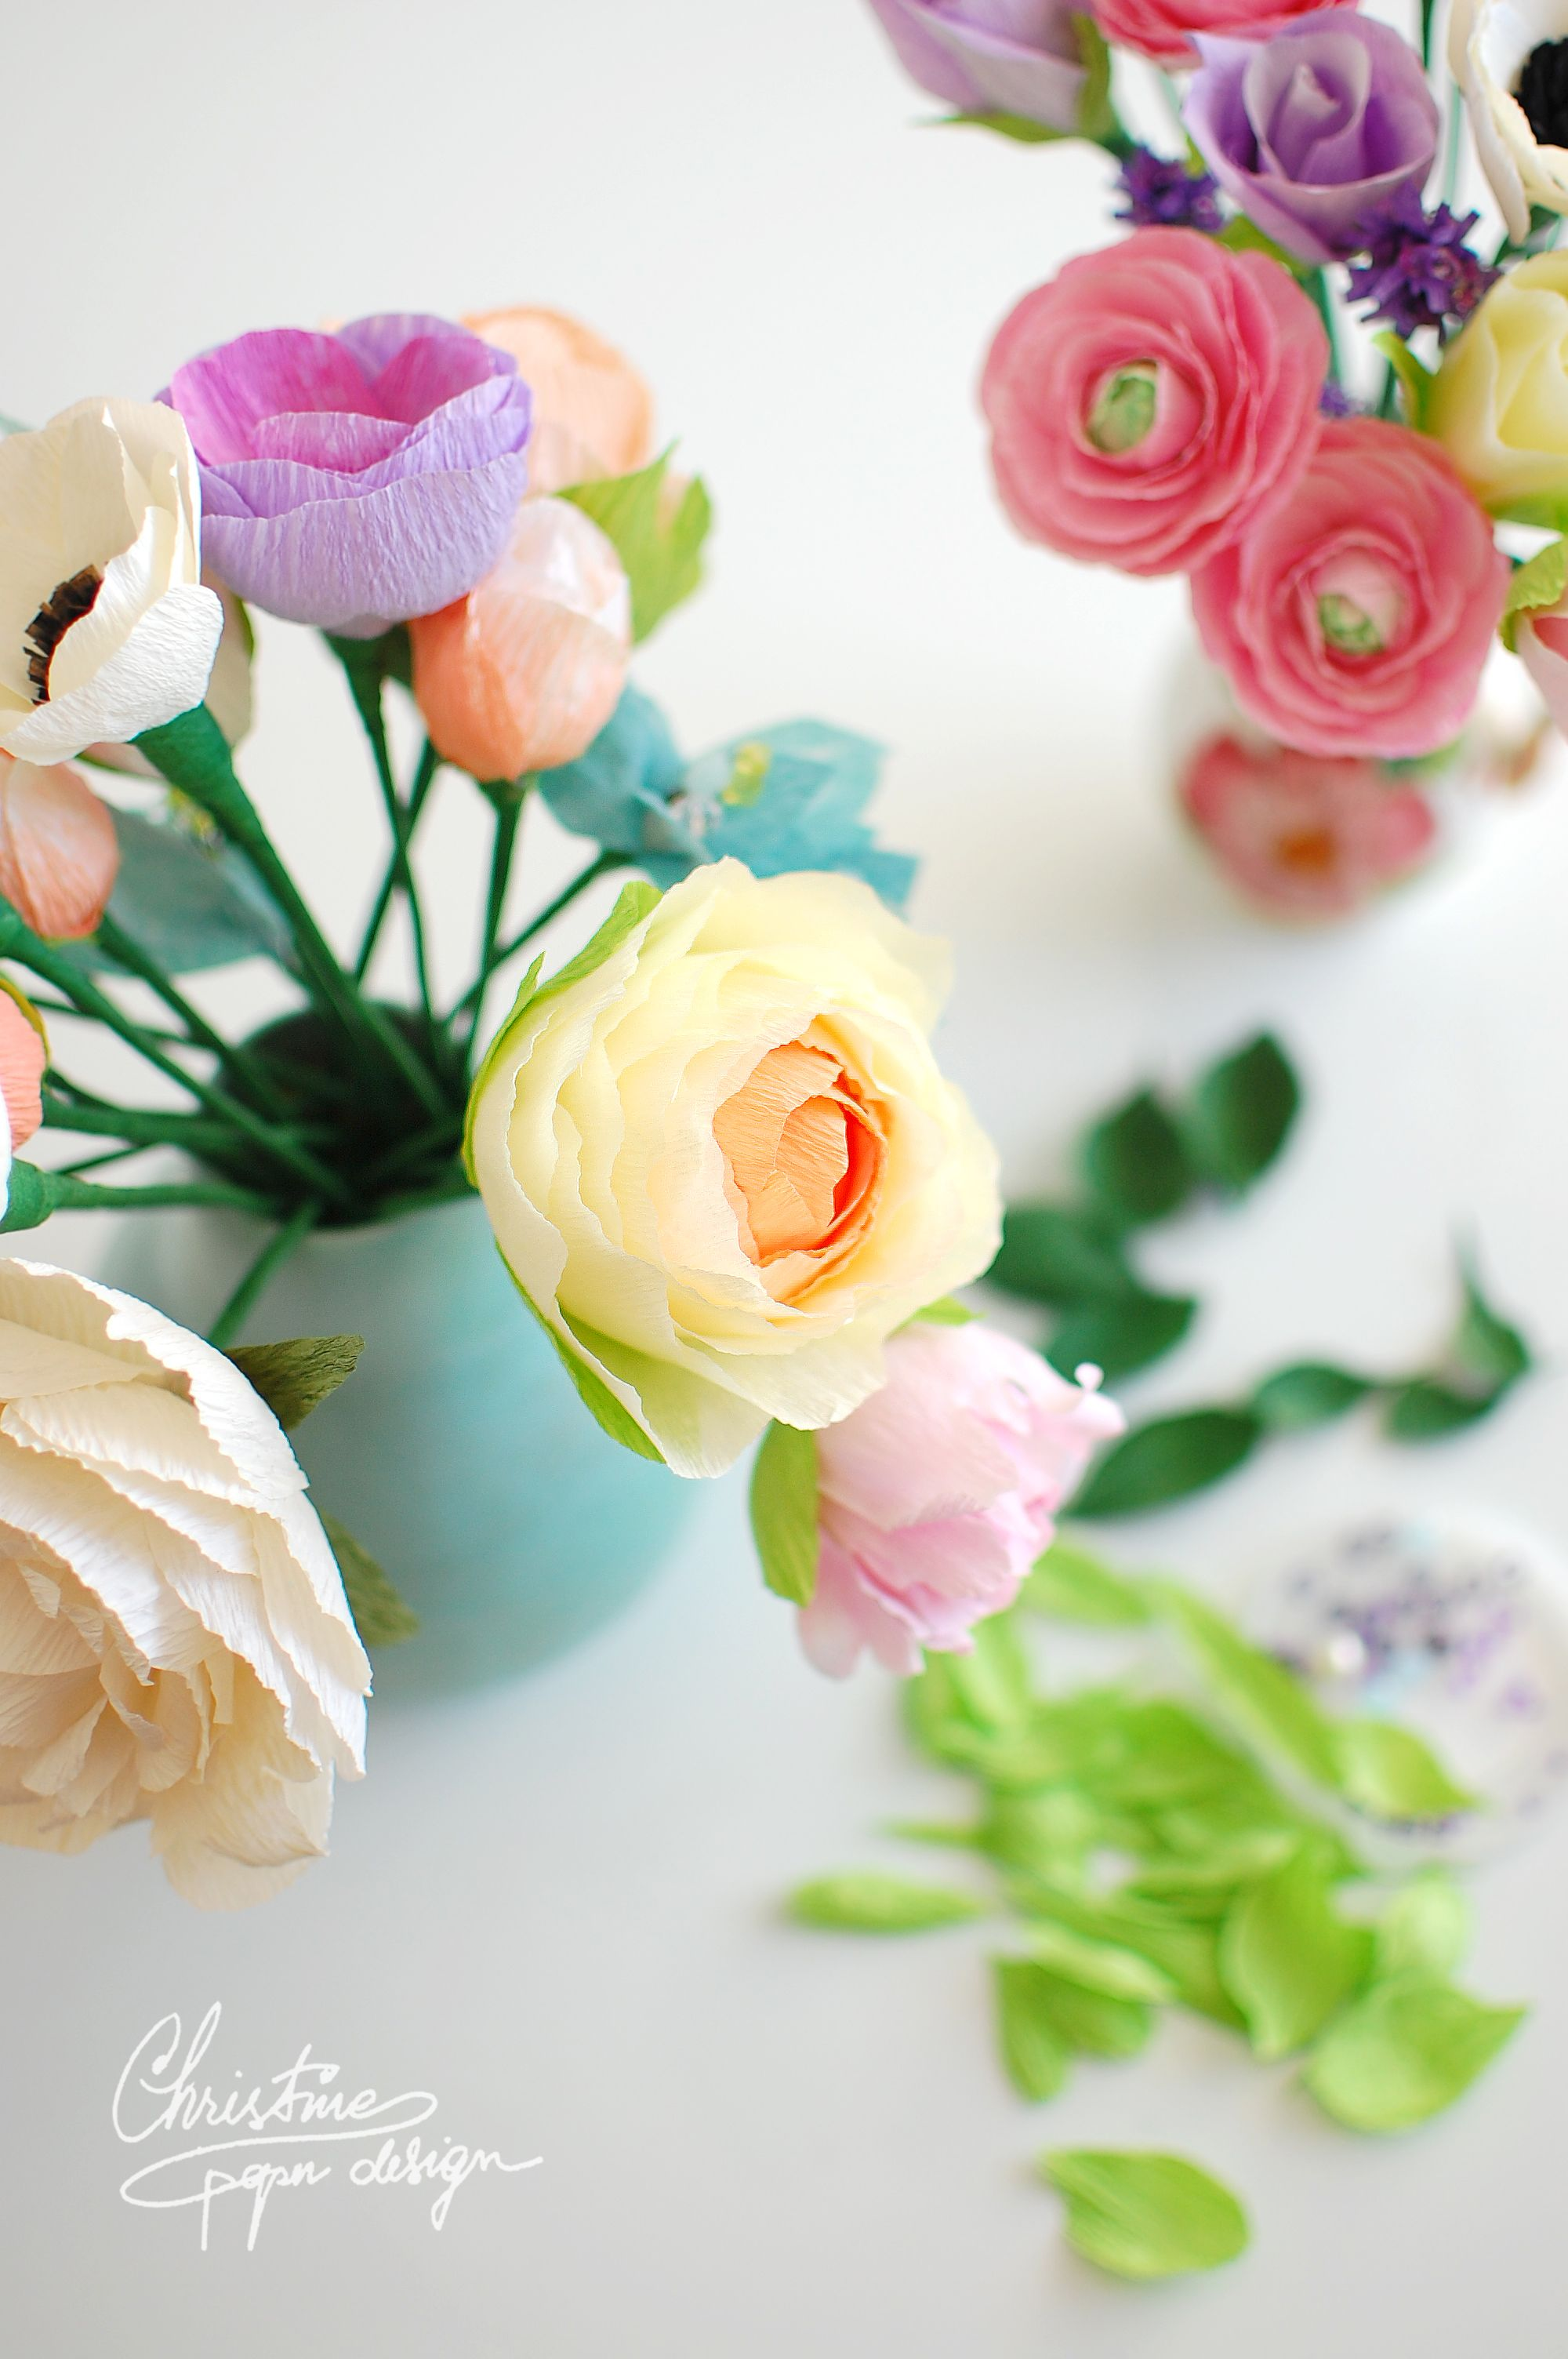 Diy Paper Flowers In Pastel Colours By Christine Paper Design